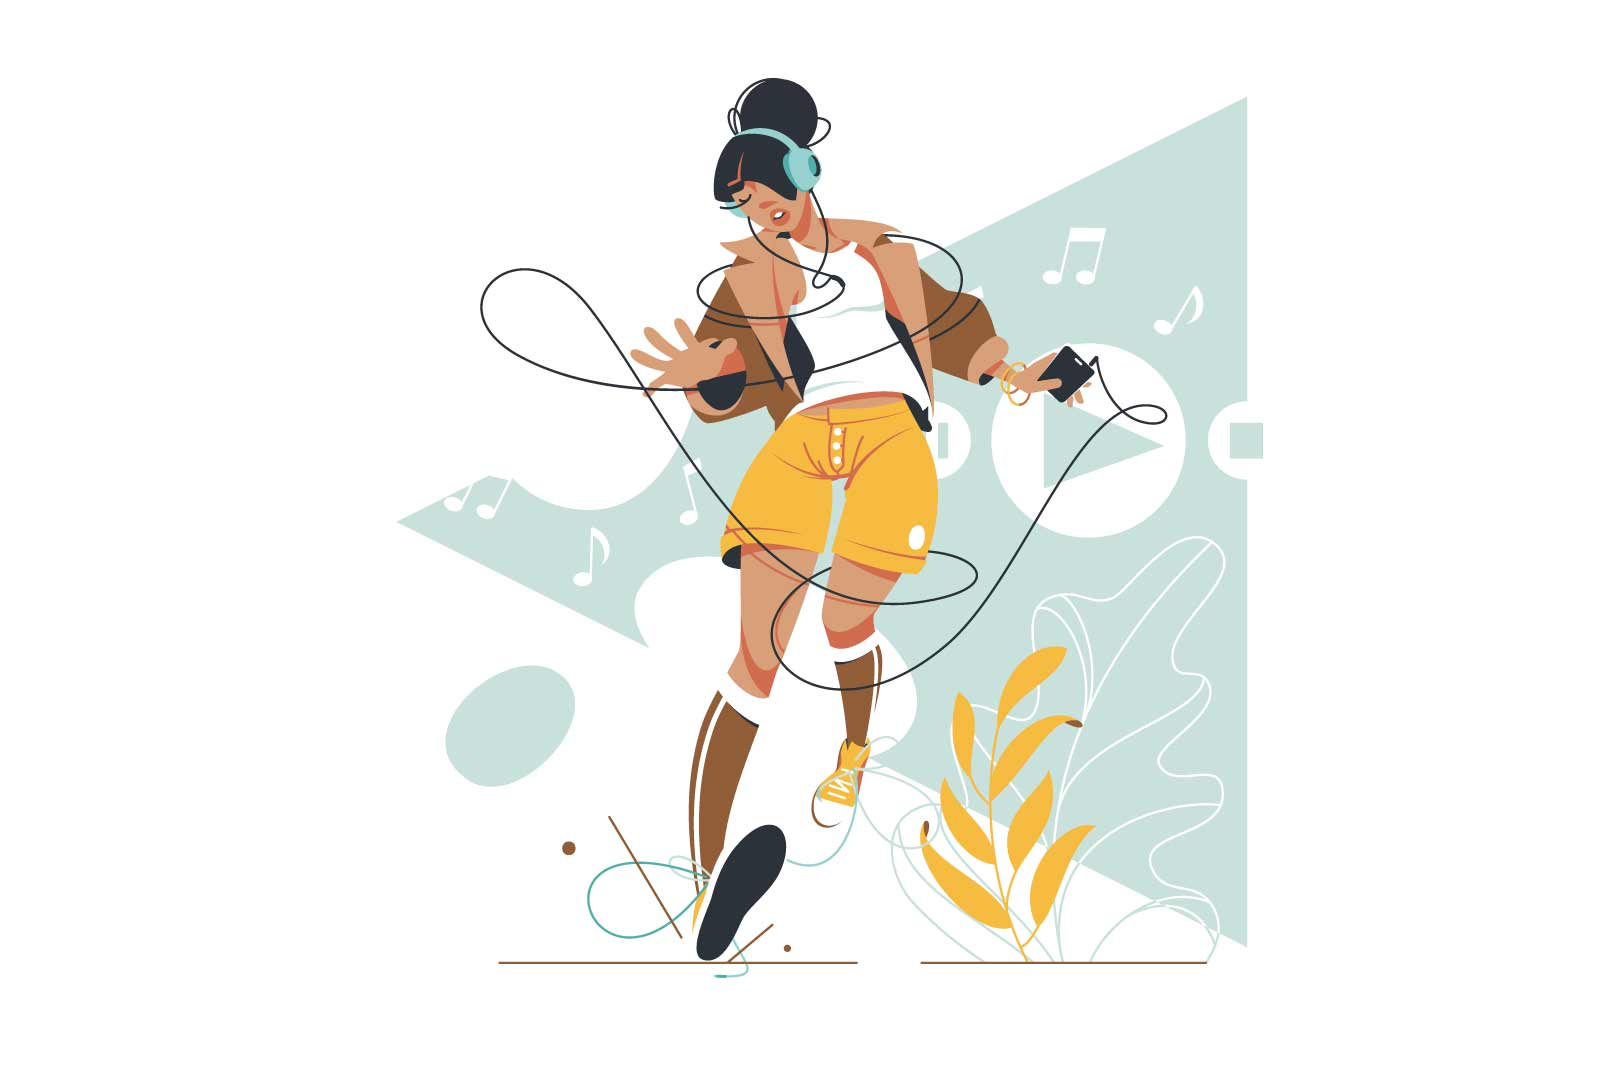 Attractive young woman listening and dancing to music. Isolated concept of relaxing girl character using mobile phone for digital app with icon interface. Vector illustration.